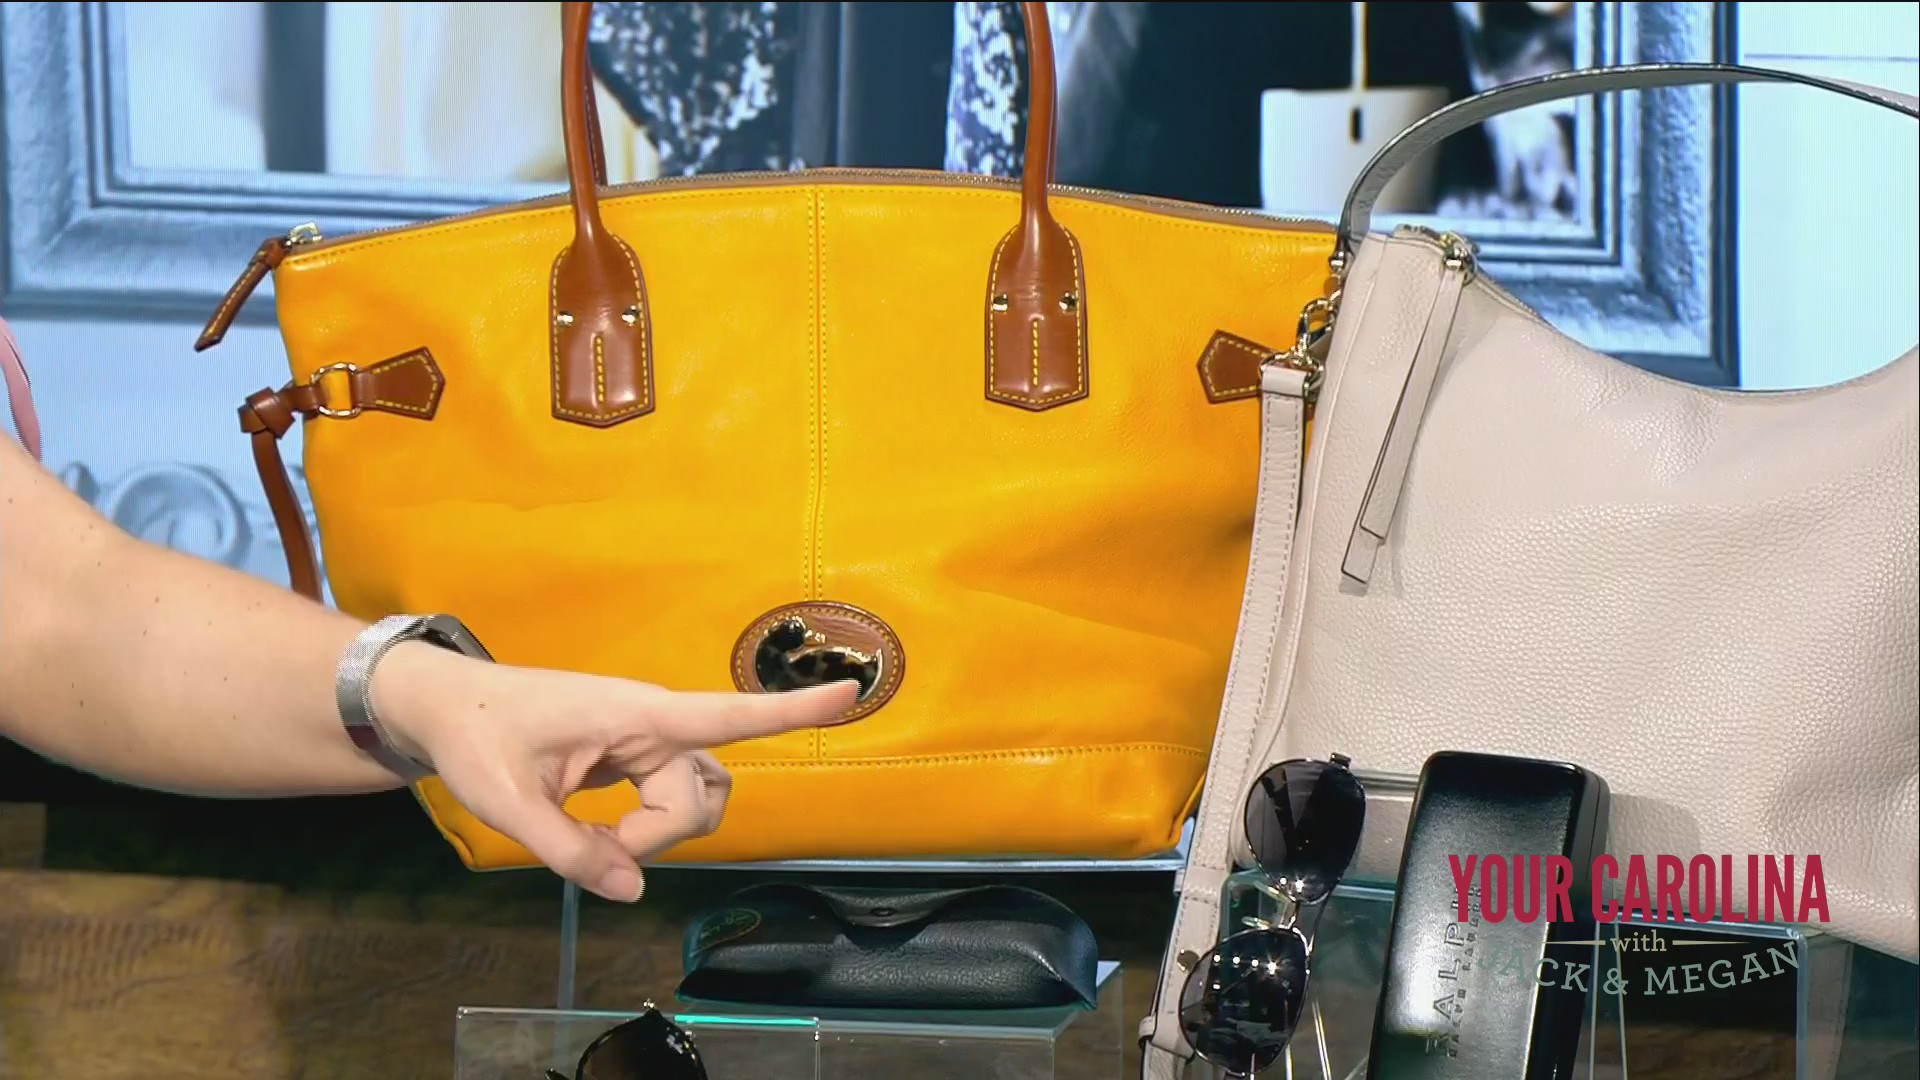 Fashion Trend Tuesday - How To Travel Light